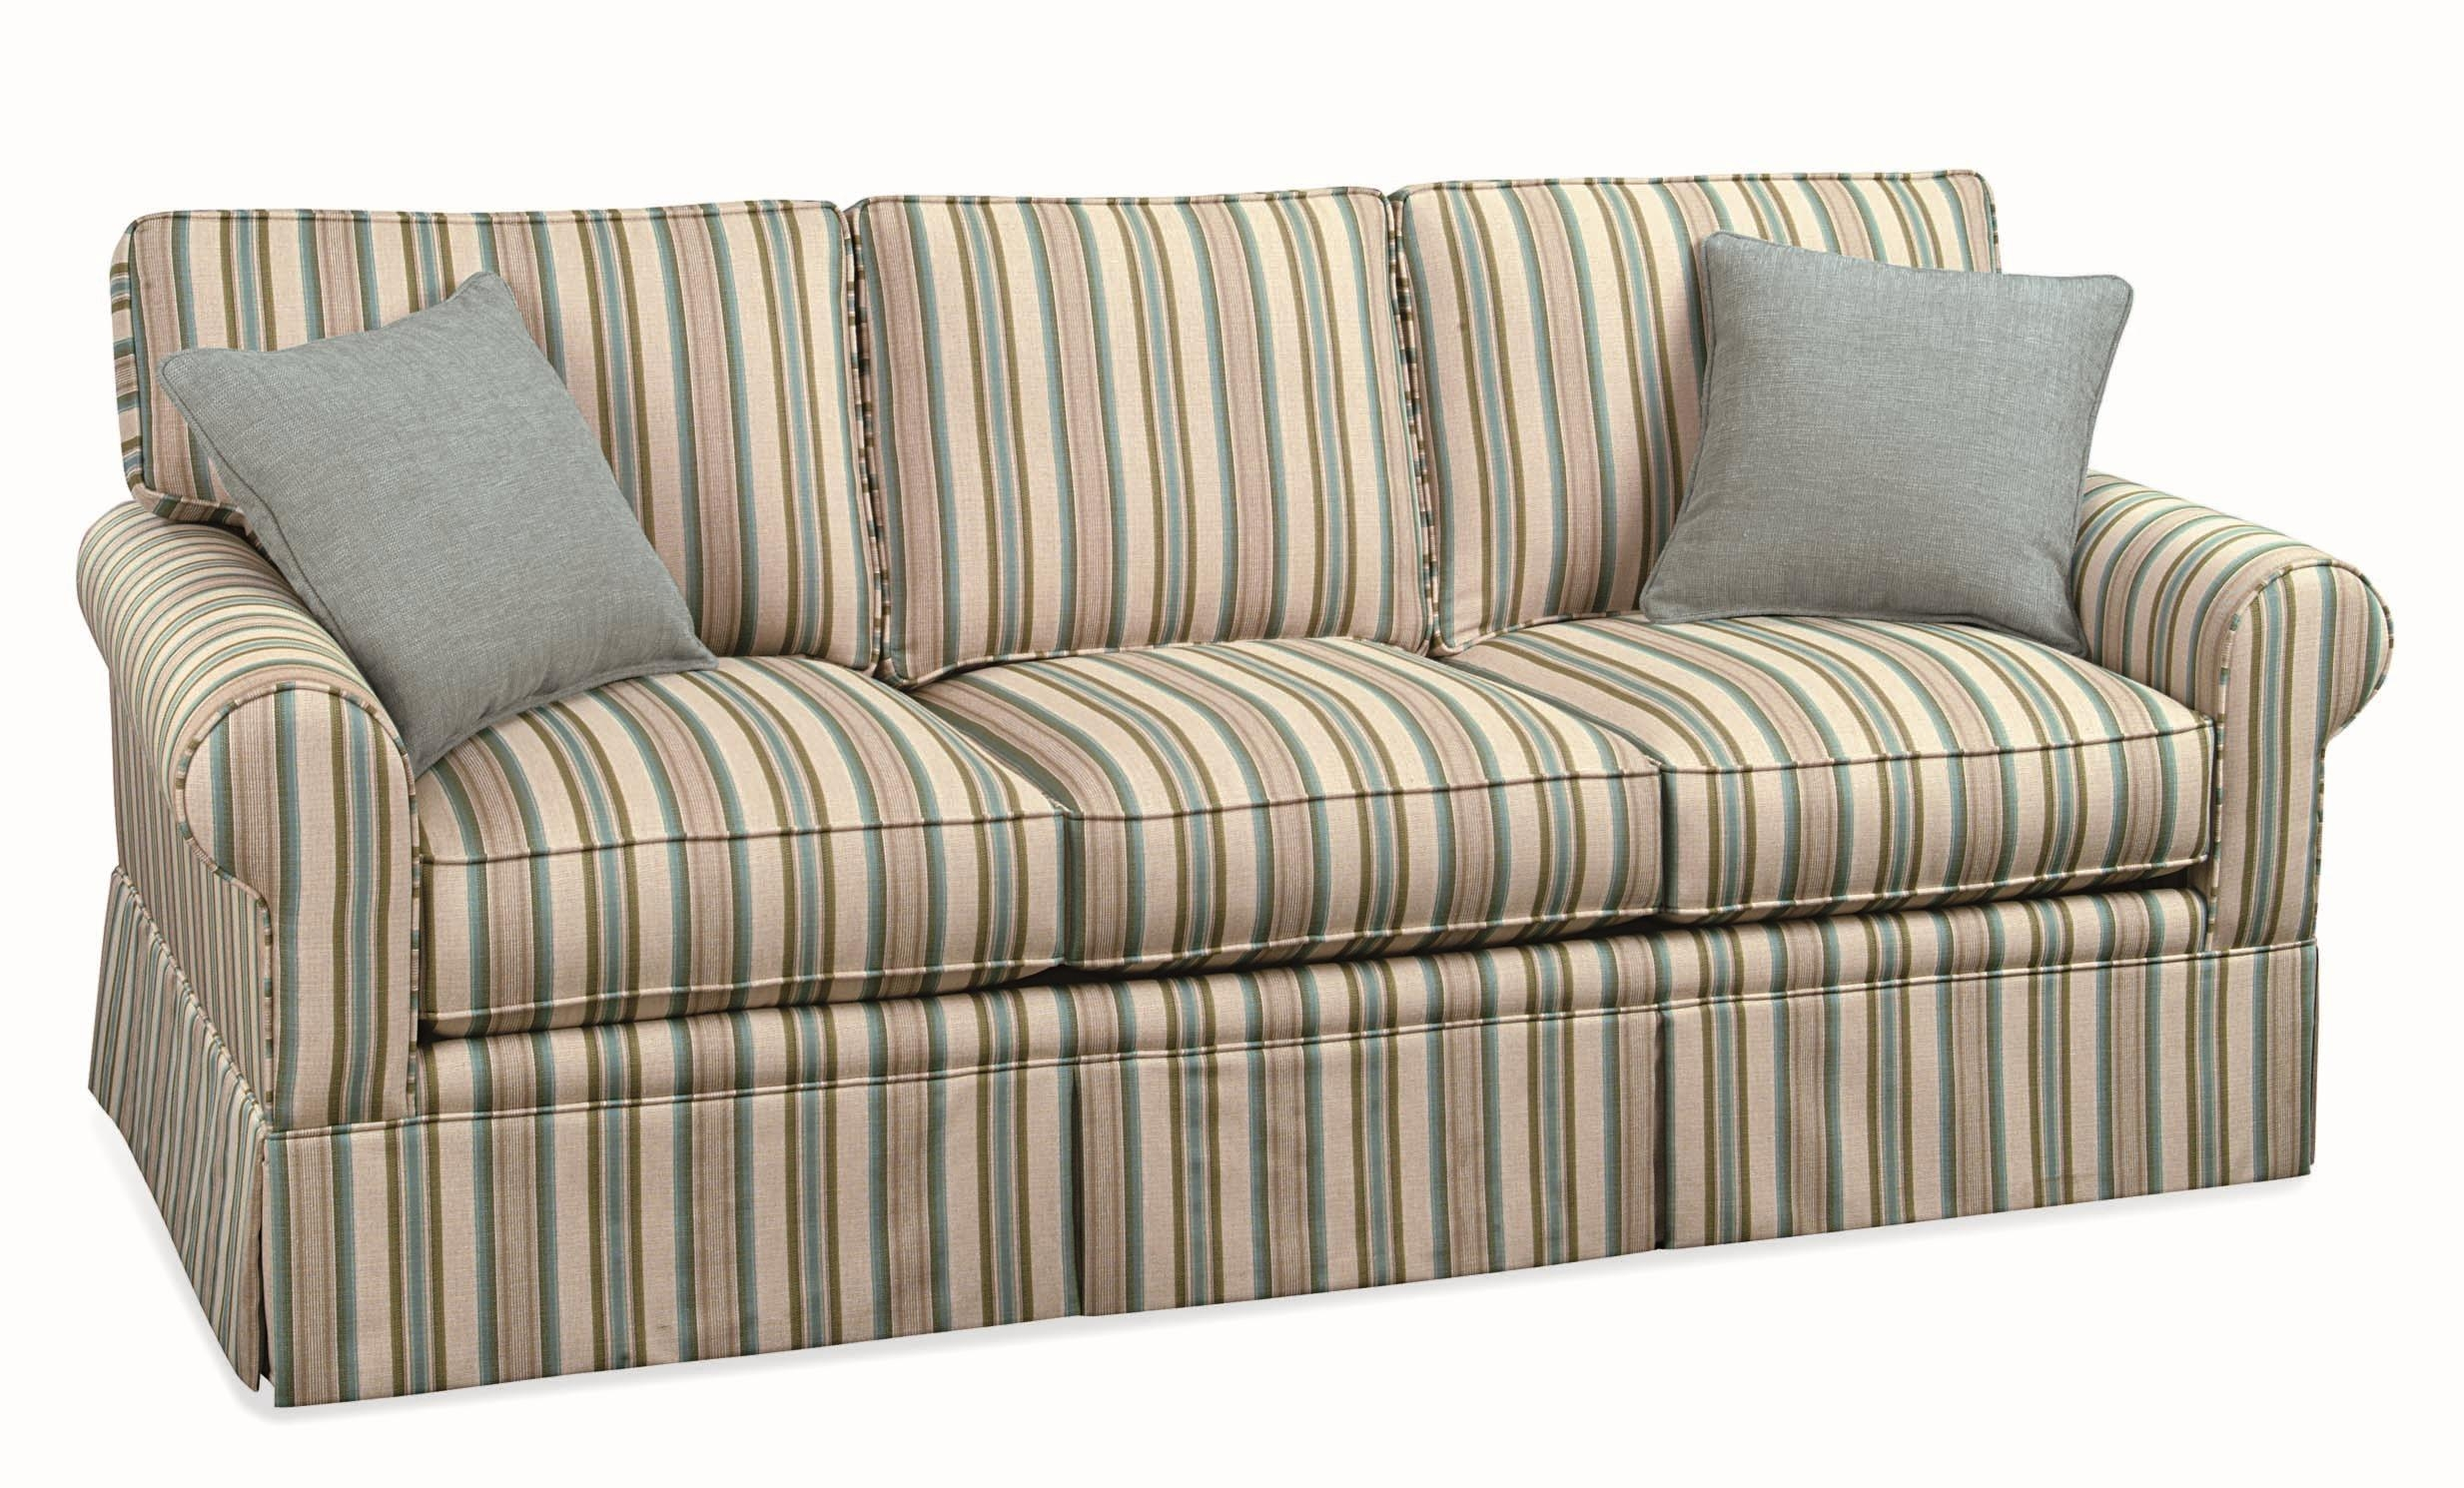 Braxton Culler Sofas & Accent Sofas Store – Dealer Locator With Regard To Braxton Sofas (Image 4 of 20)